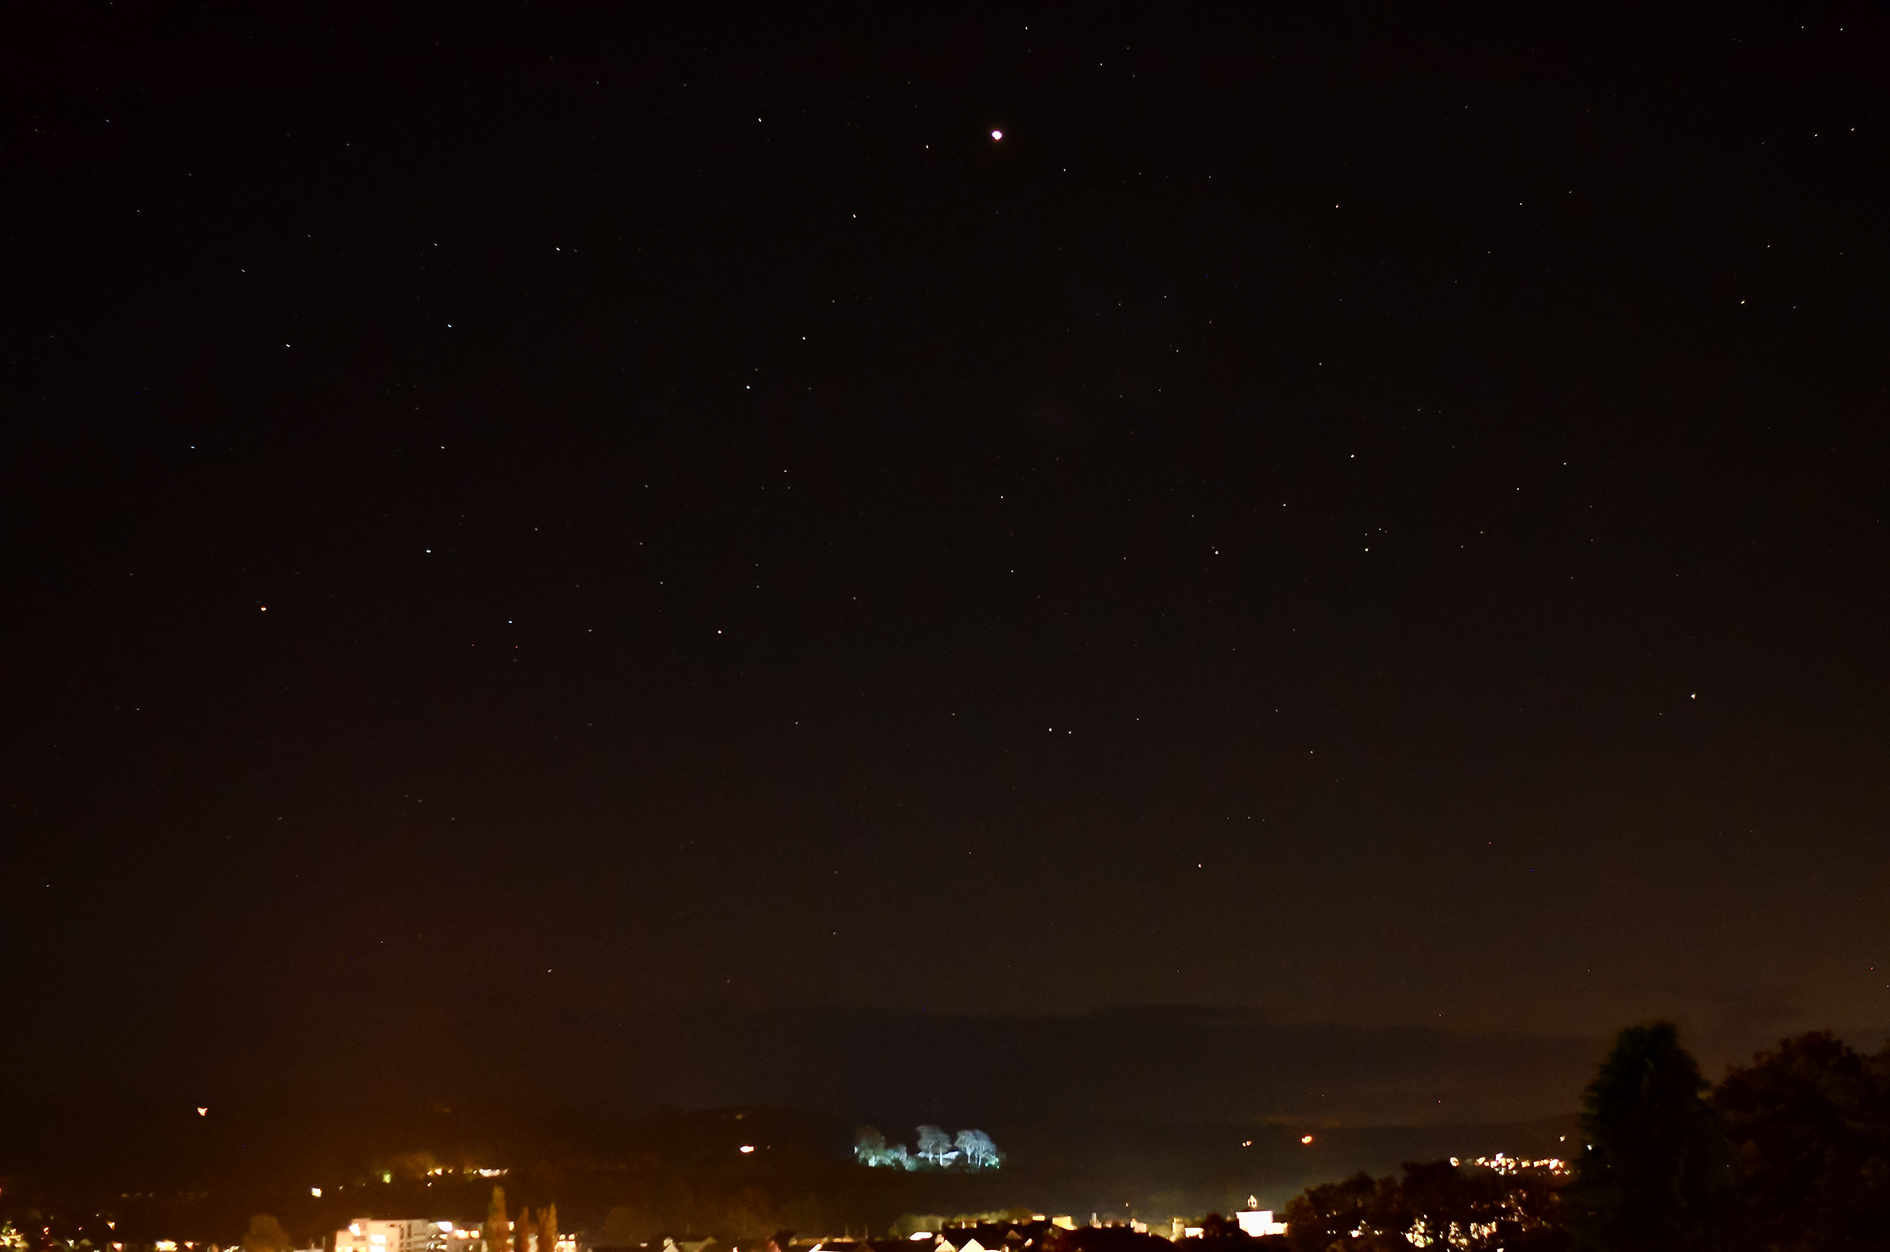 Mars high above Kendal Castle, from Queens Road. 12th October, 22:13hrs, 24mm, 1.6sec, f2.8, iso 1600